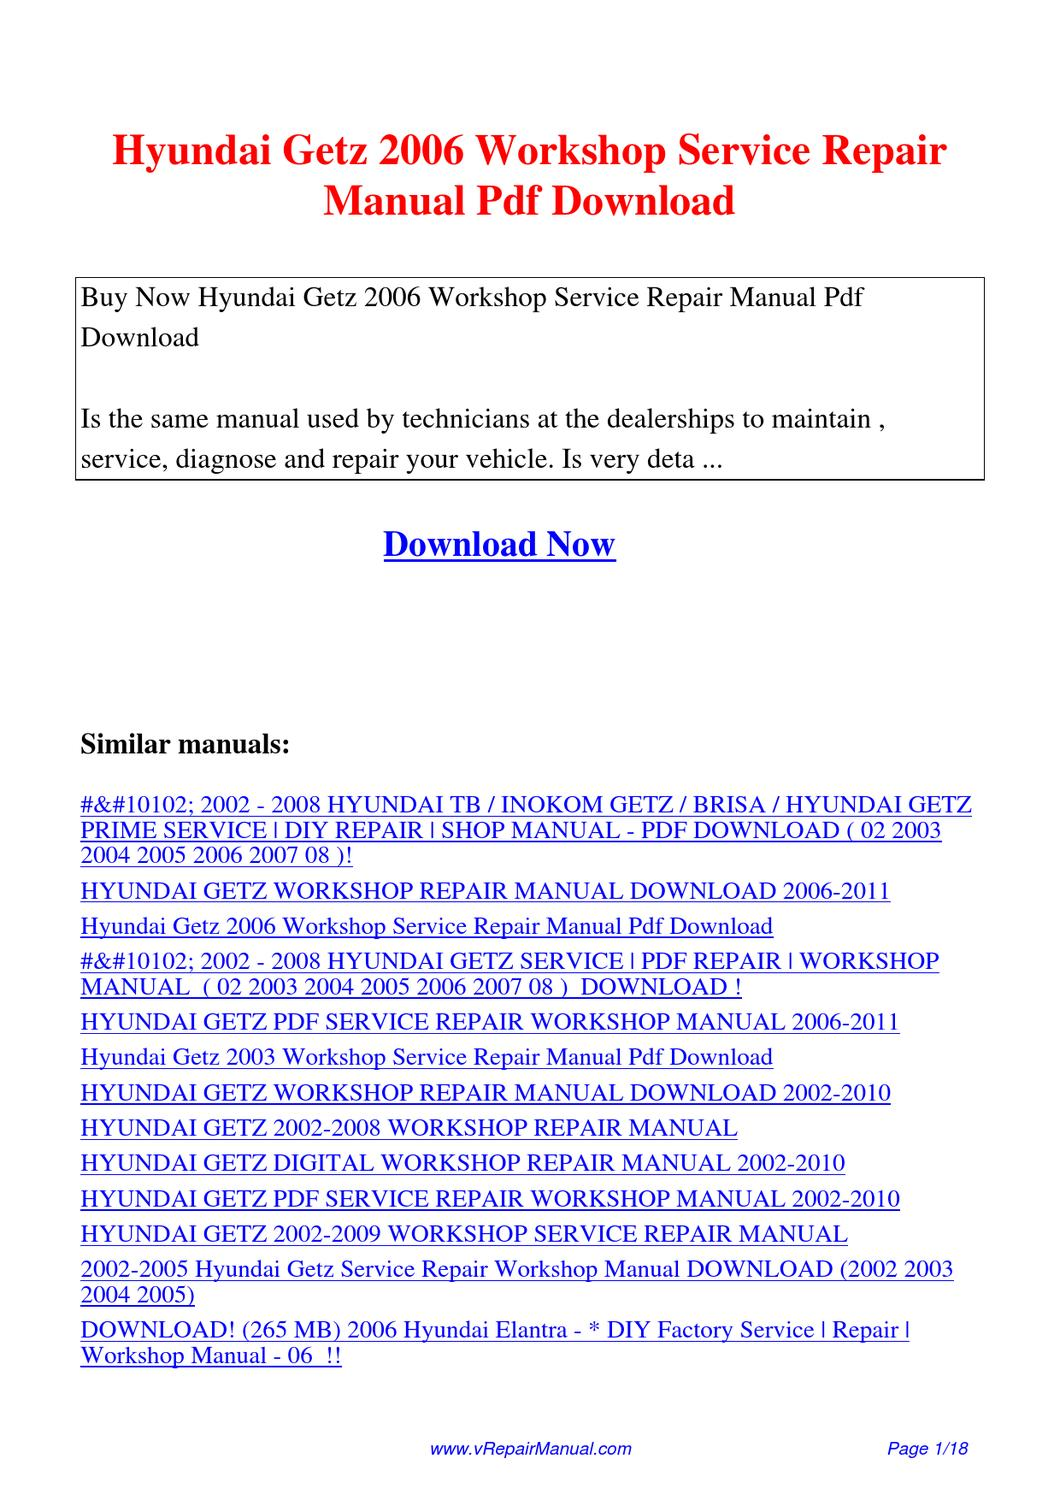 Hyundai getz user manual pdf